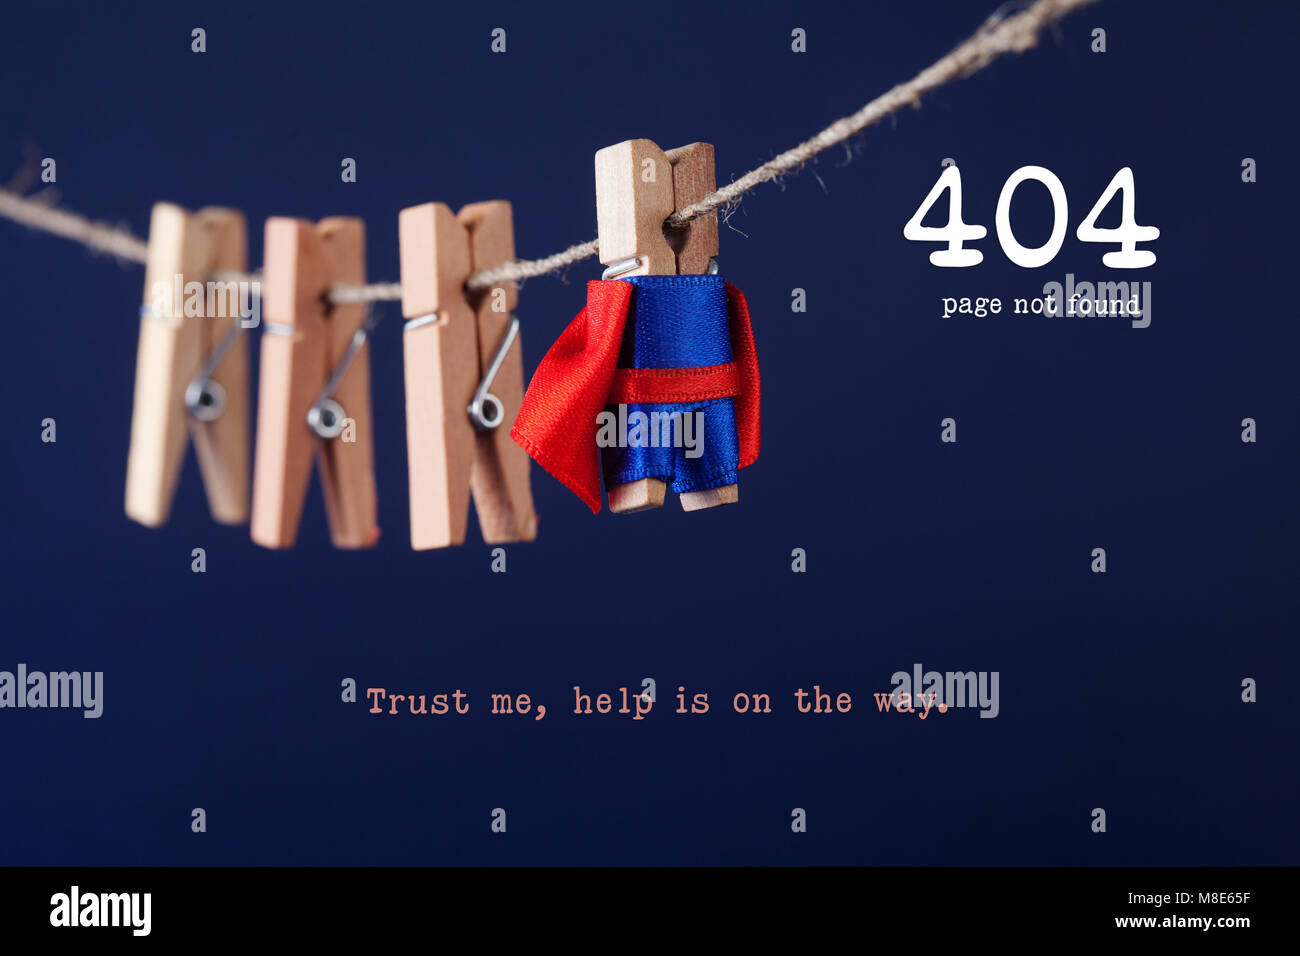 Error 404 page not found web page. Toy clothespin peg superhero on clothesline, blue background. Trust me help is - Stock Image